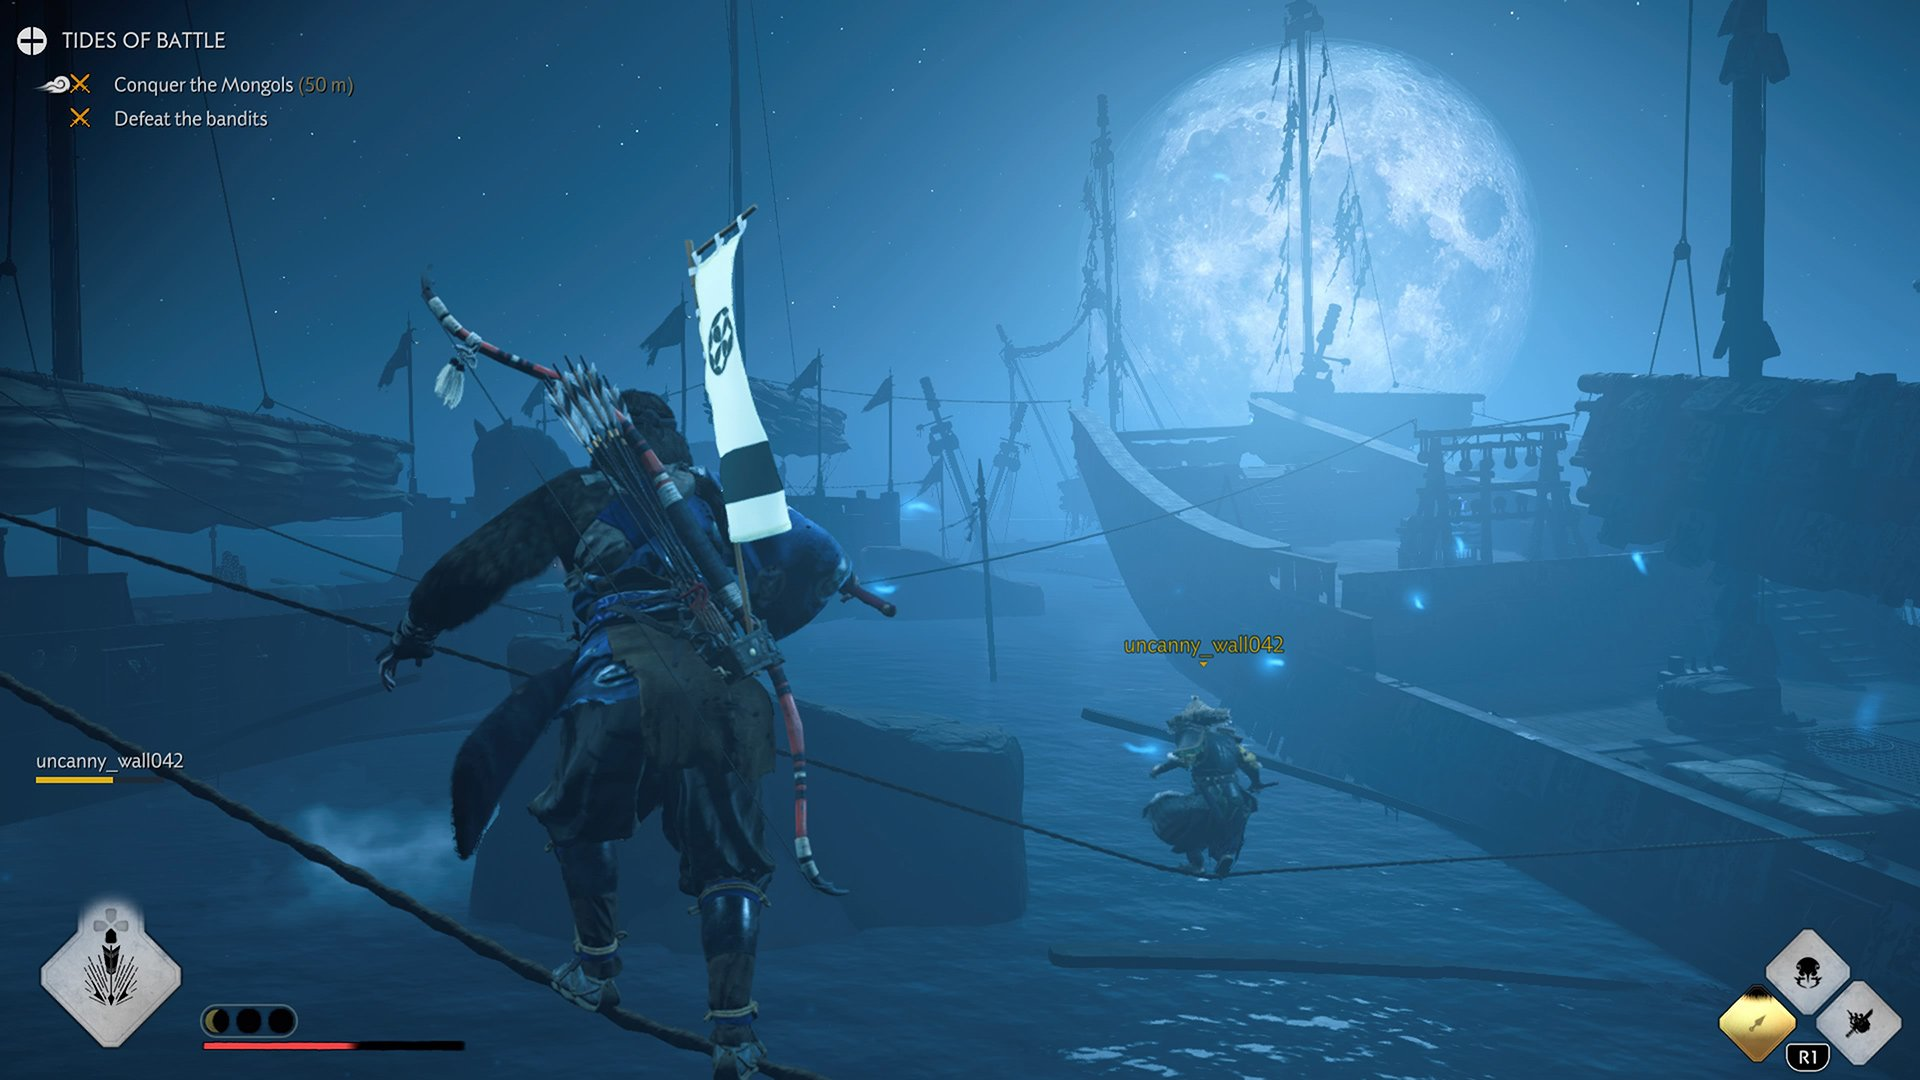 Stealthing under the moonlight across ships